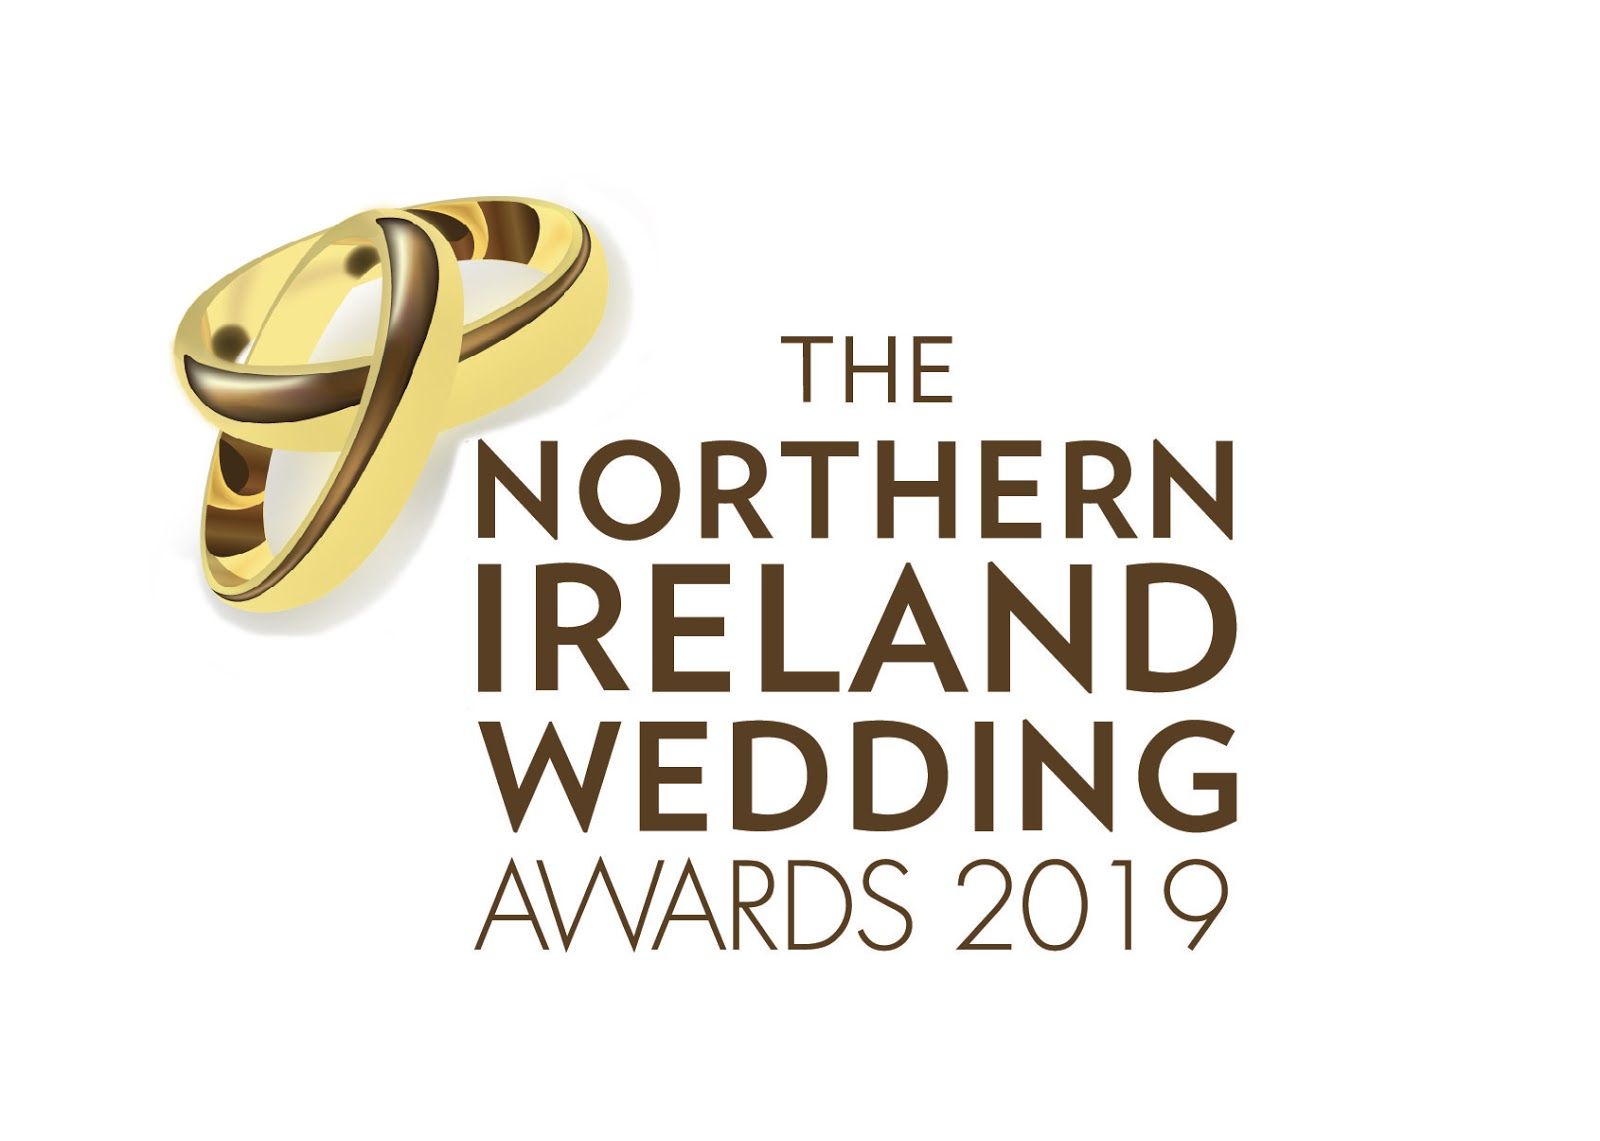 7e8f5daa30 The fourth Northern Ireland Wedding Awards are back for a big celebration  of those who make our special day one to remember.